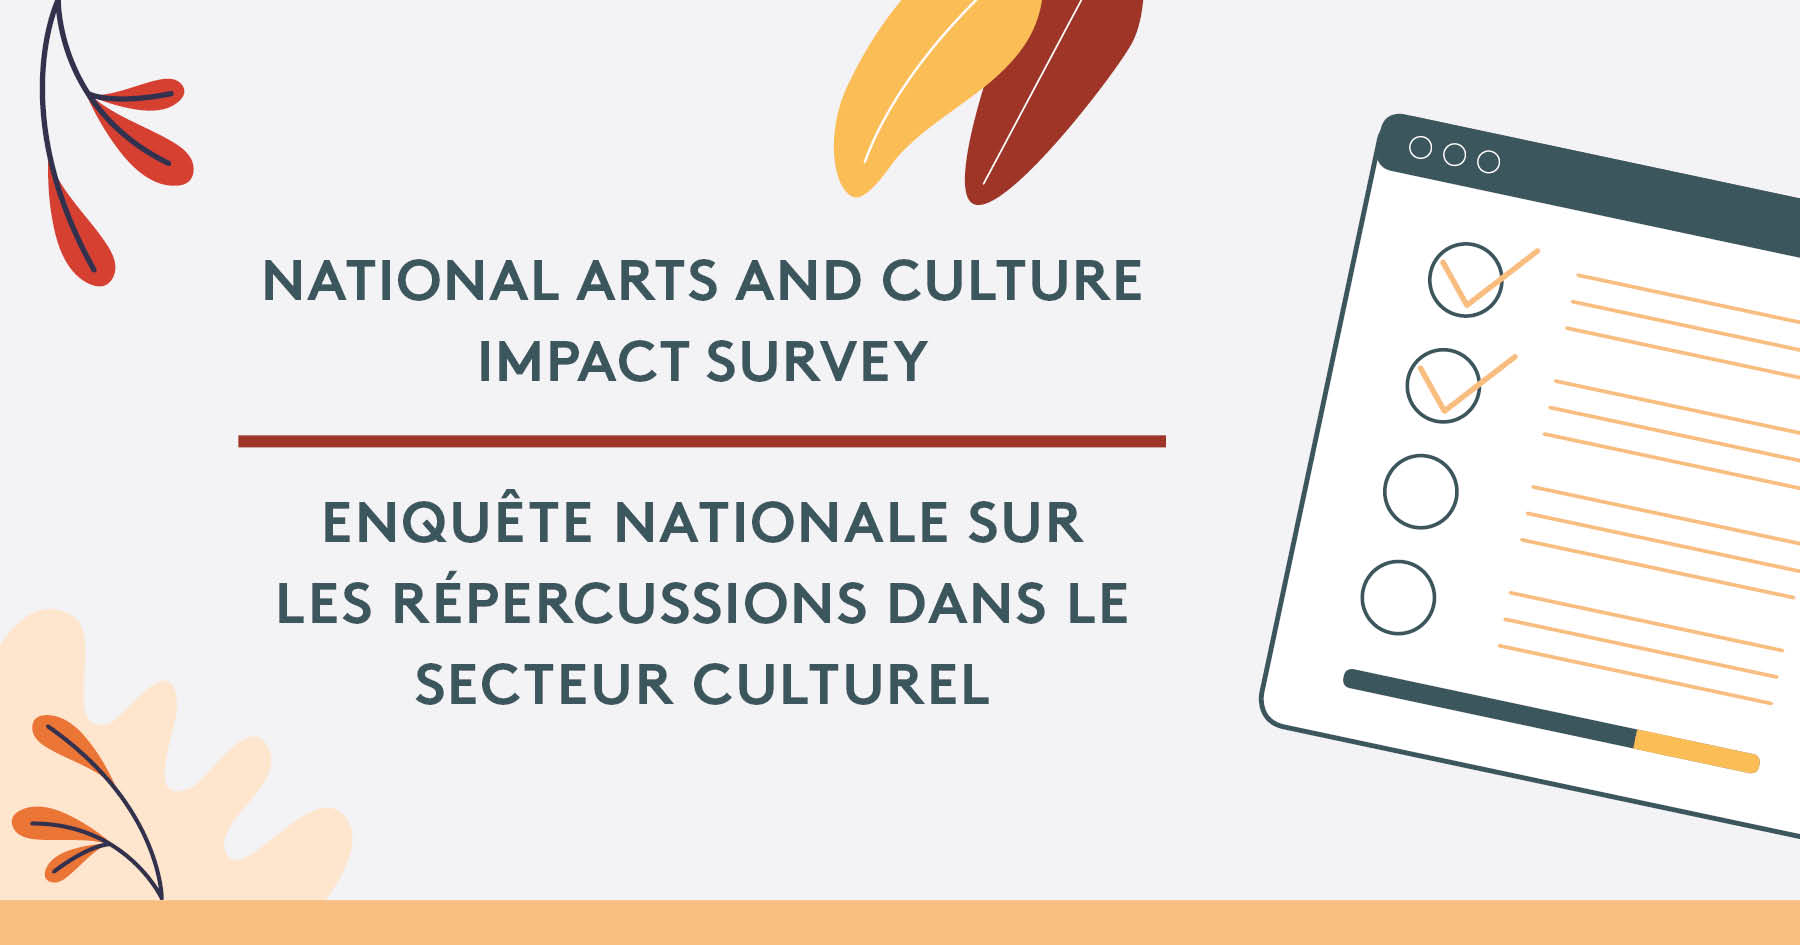 Announcing: The National Arts and Culture Impact Survey (NACIS)